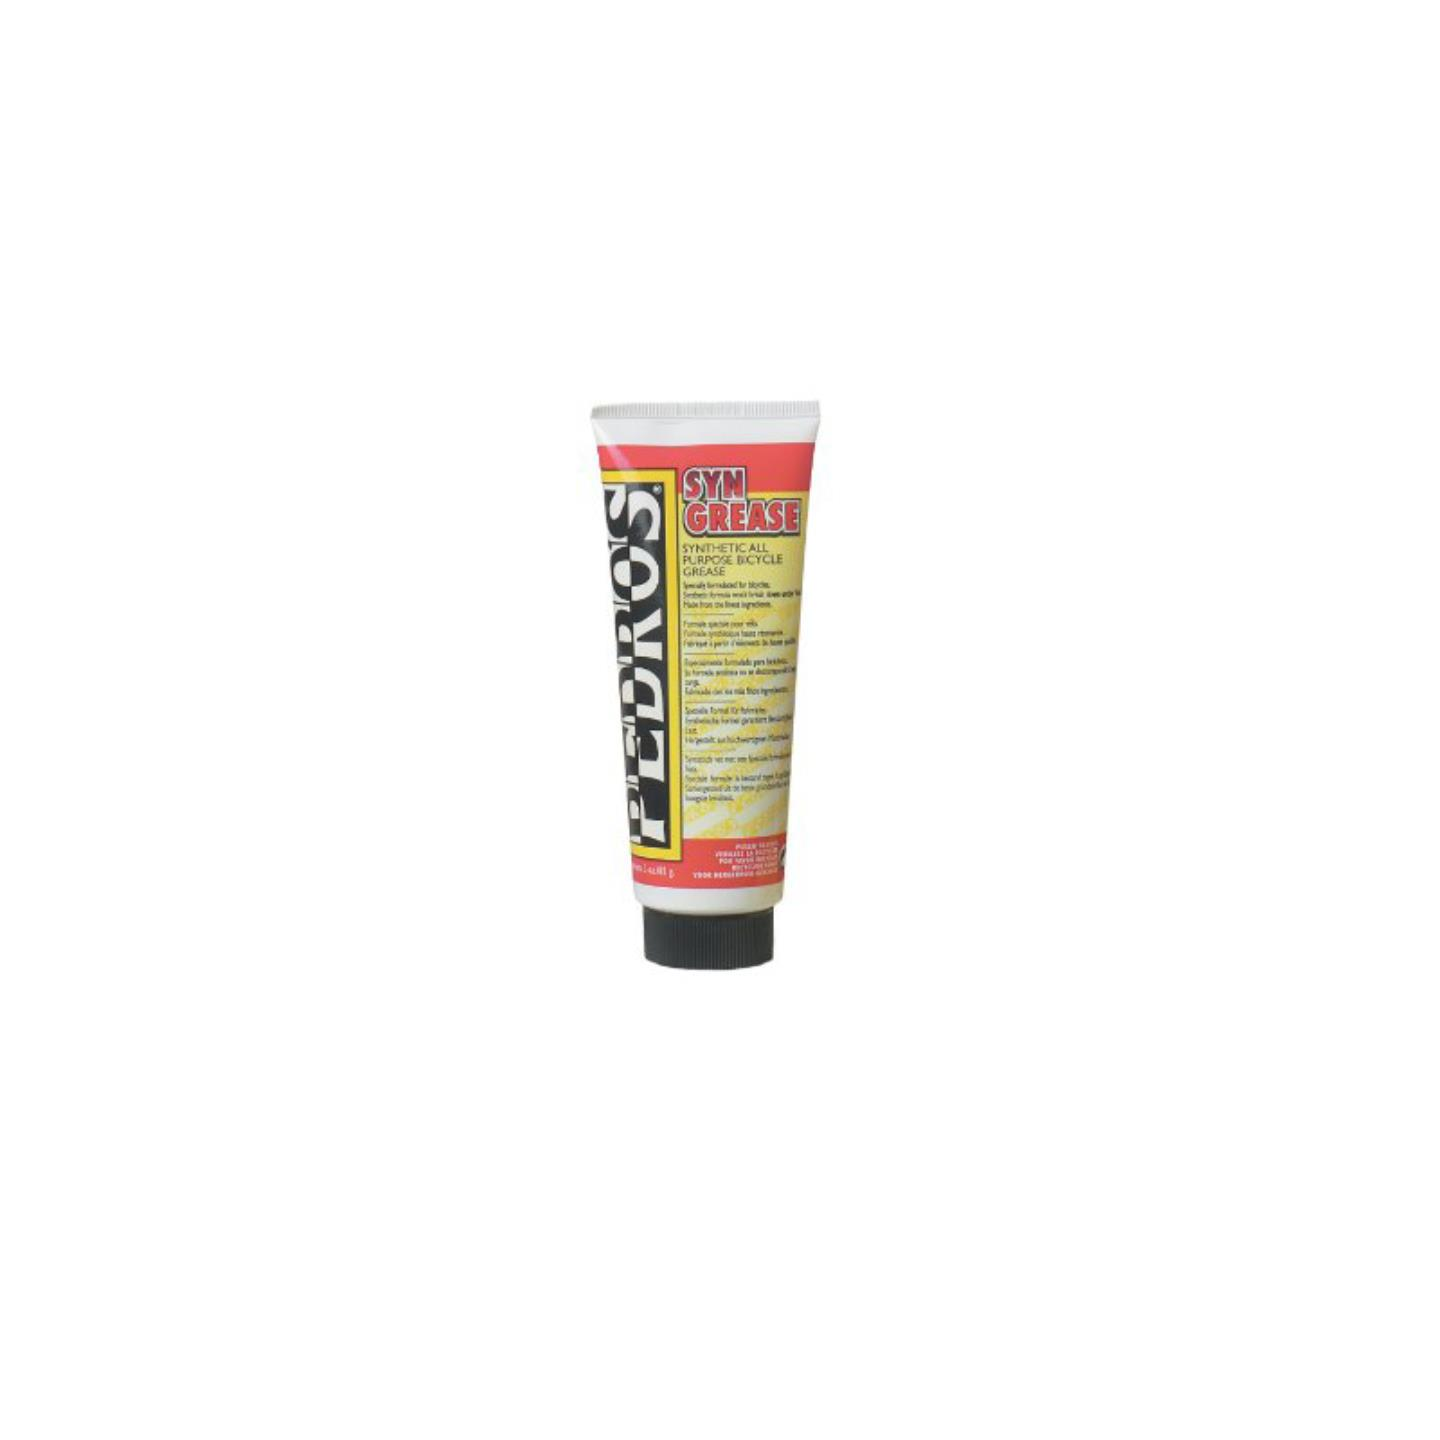 Pedros Syn Grease w/ Injector - 3oz/85g